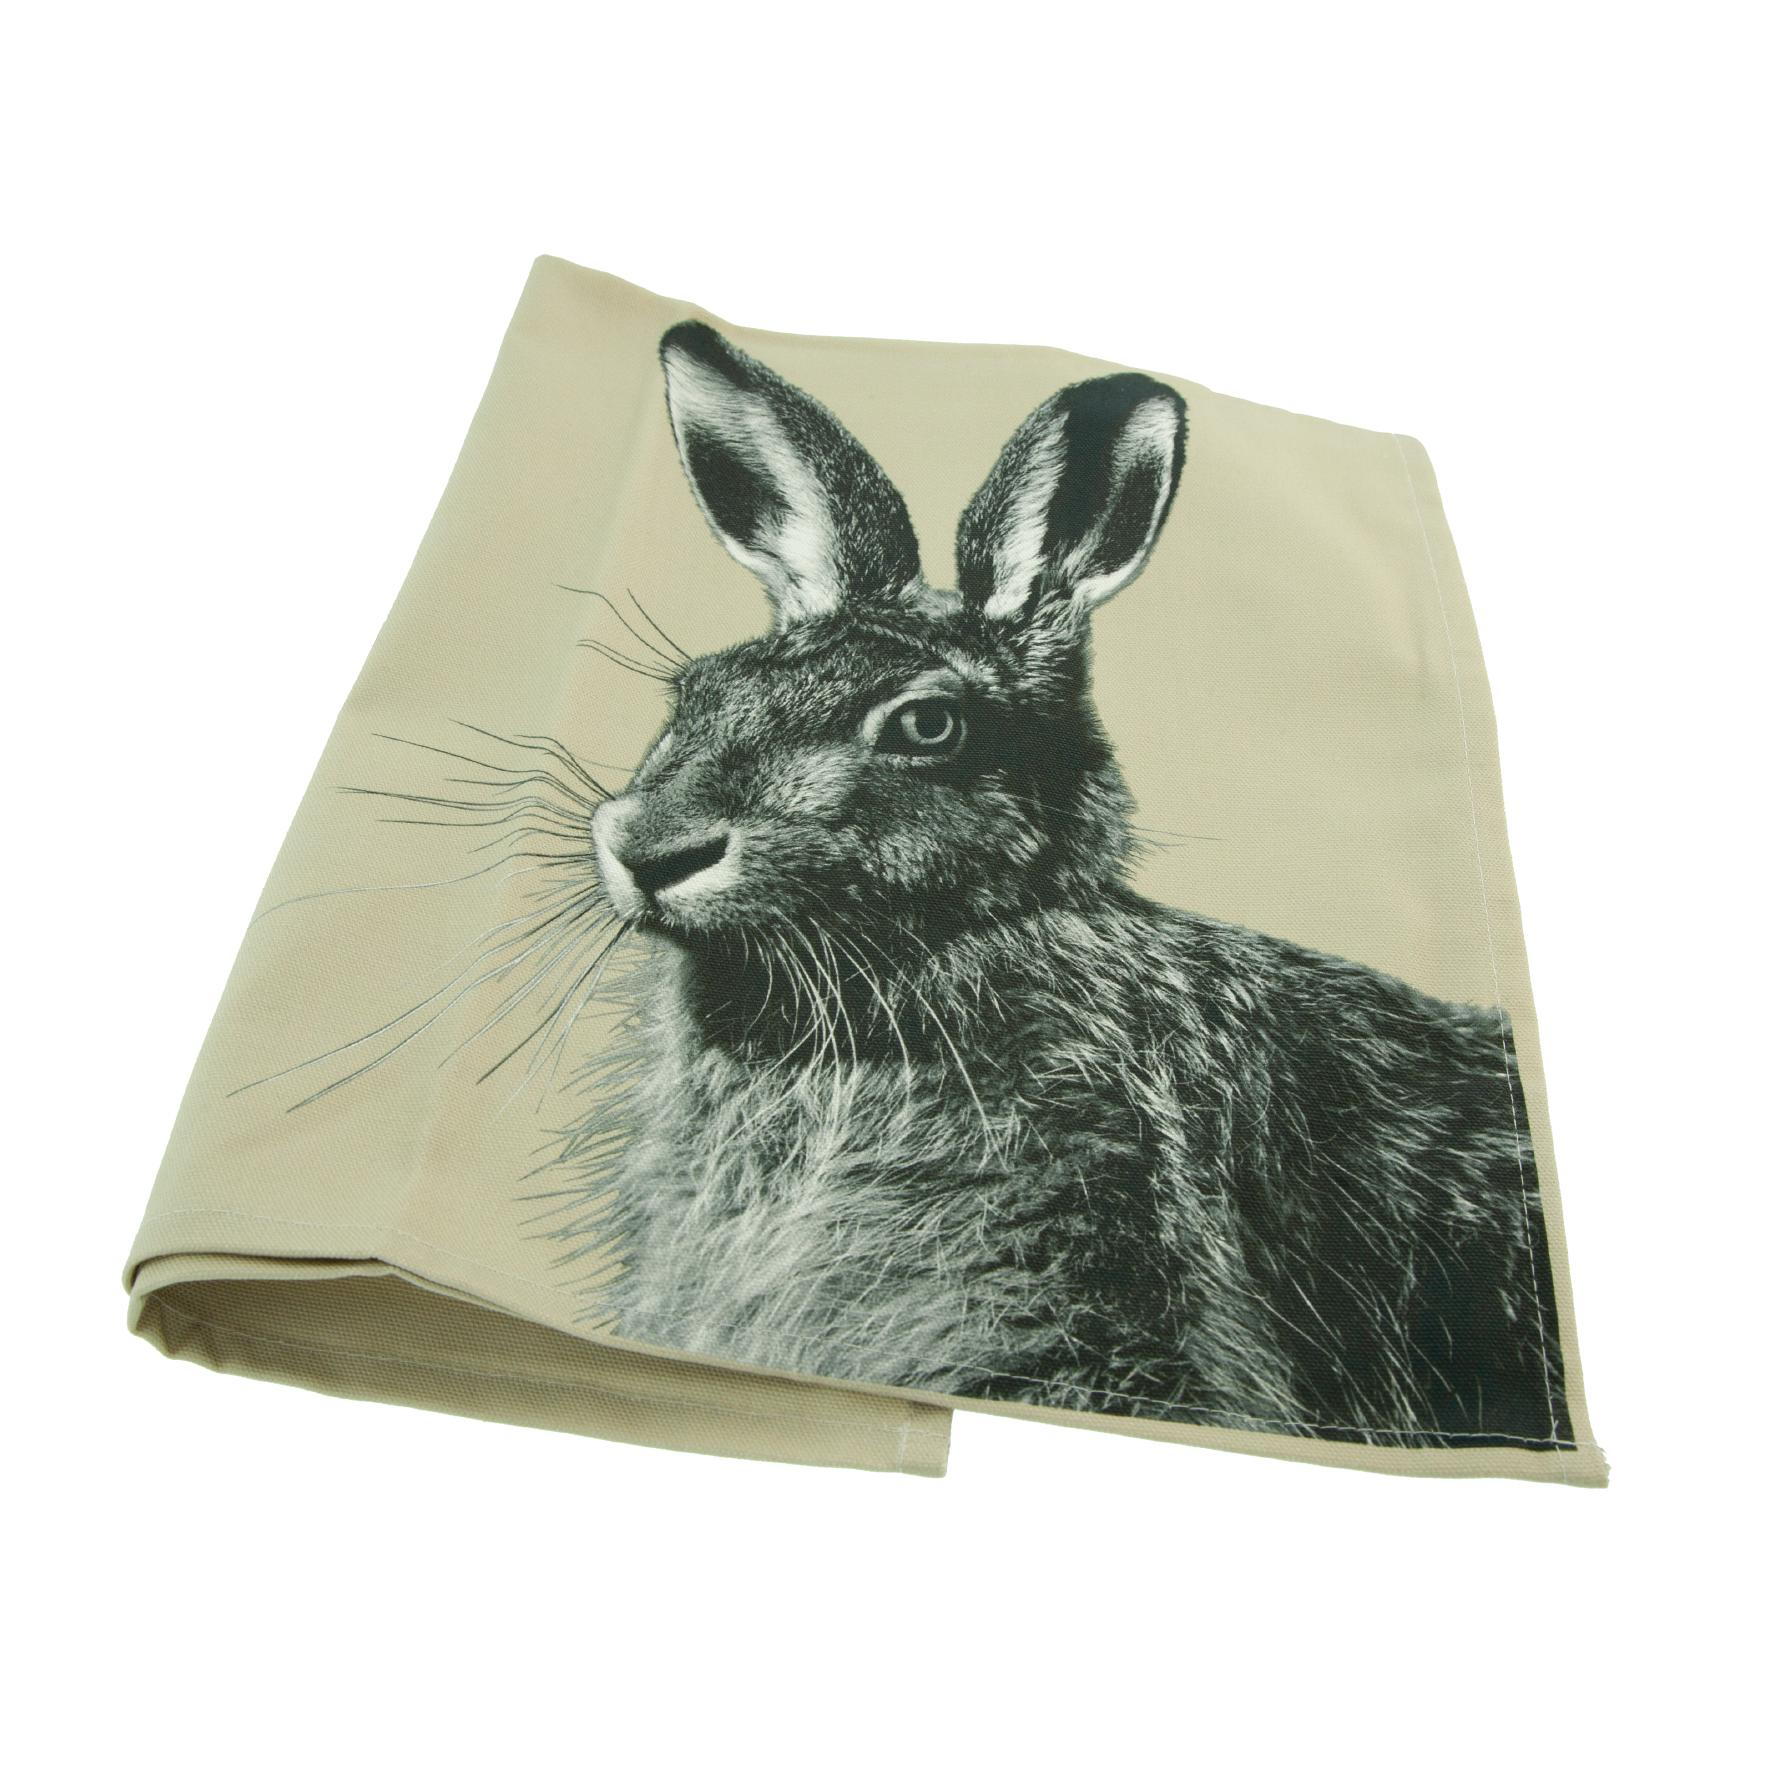 Hare tea towel on sand grey